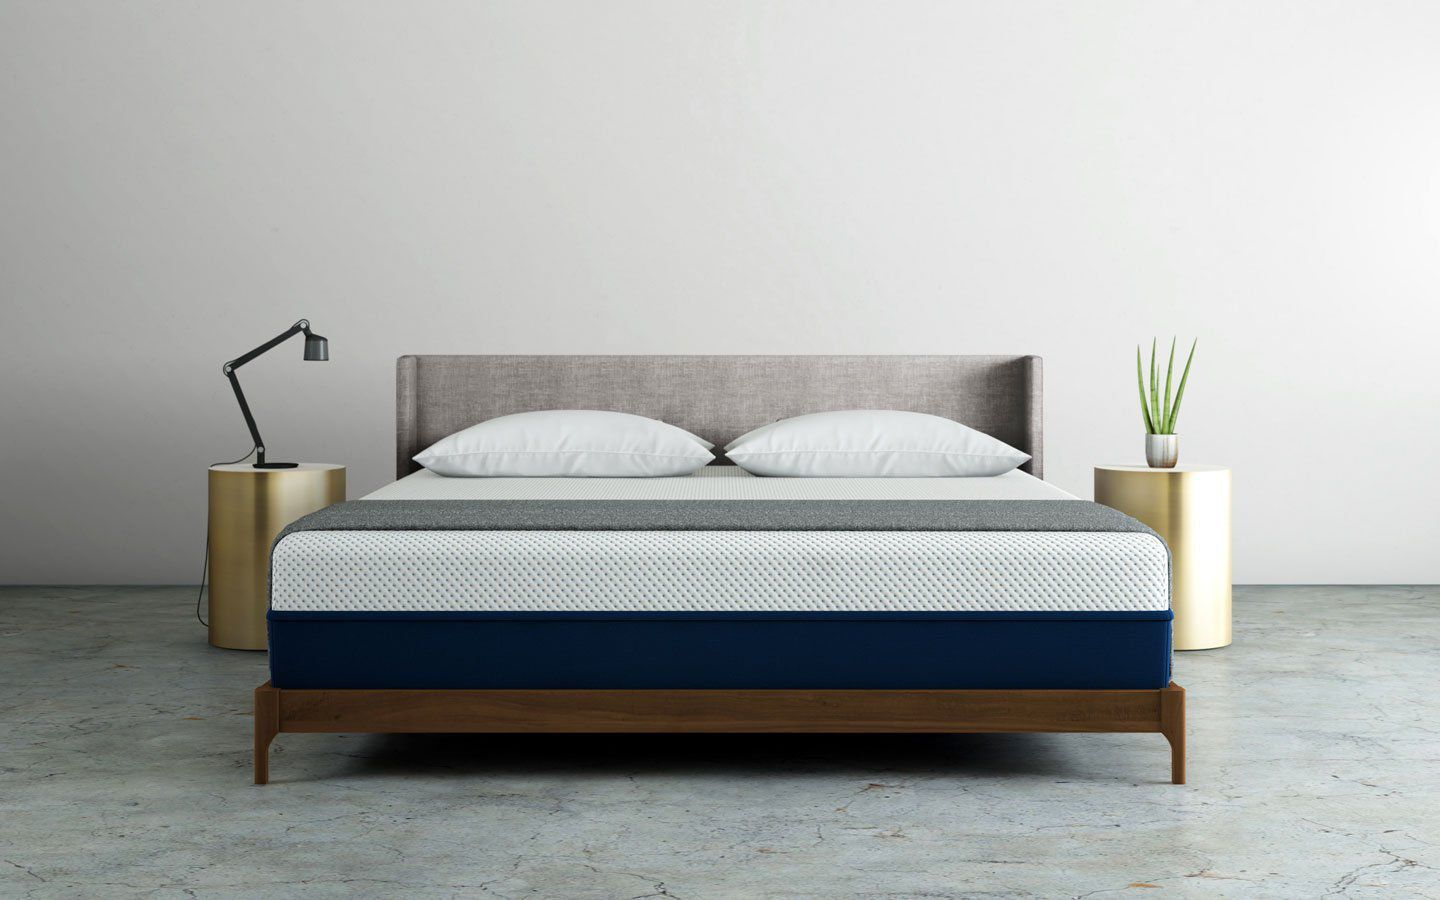 Sleeping Bed Buying – Tips On How To Shop